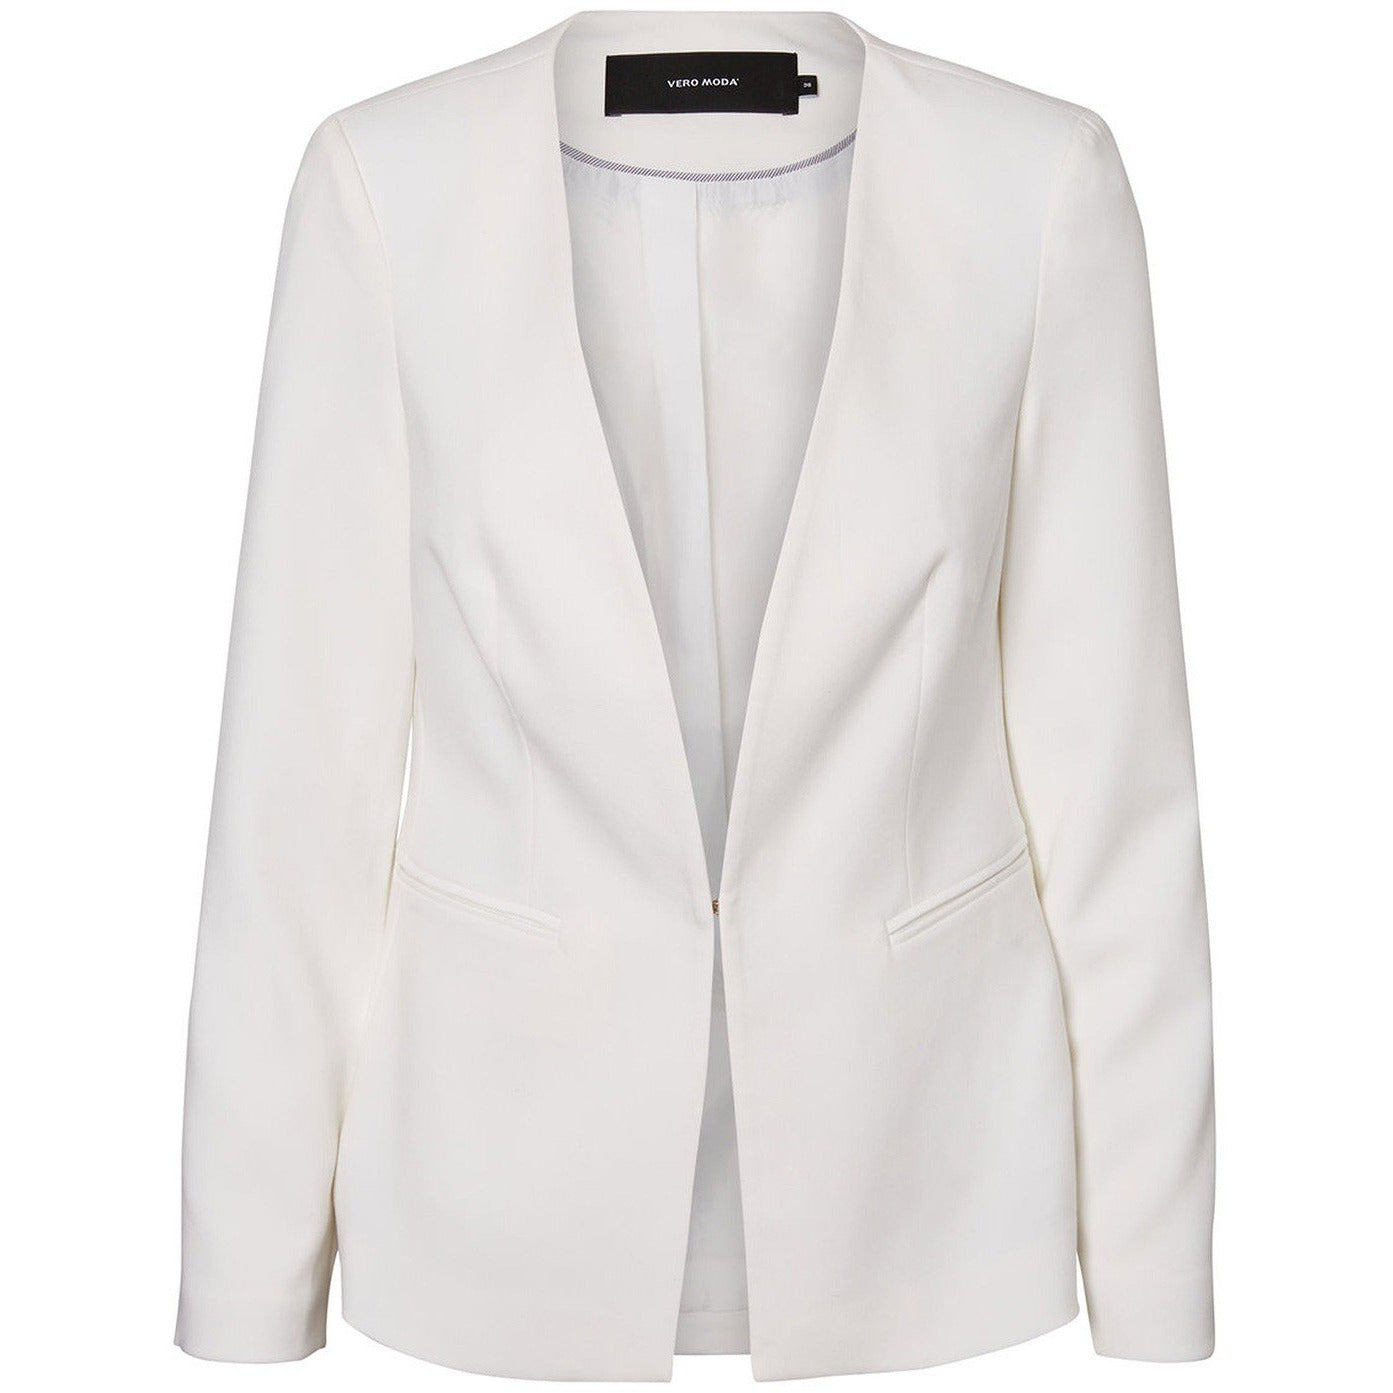 VERO MODA : Fitted Blazer